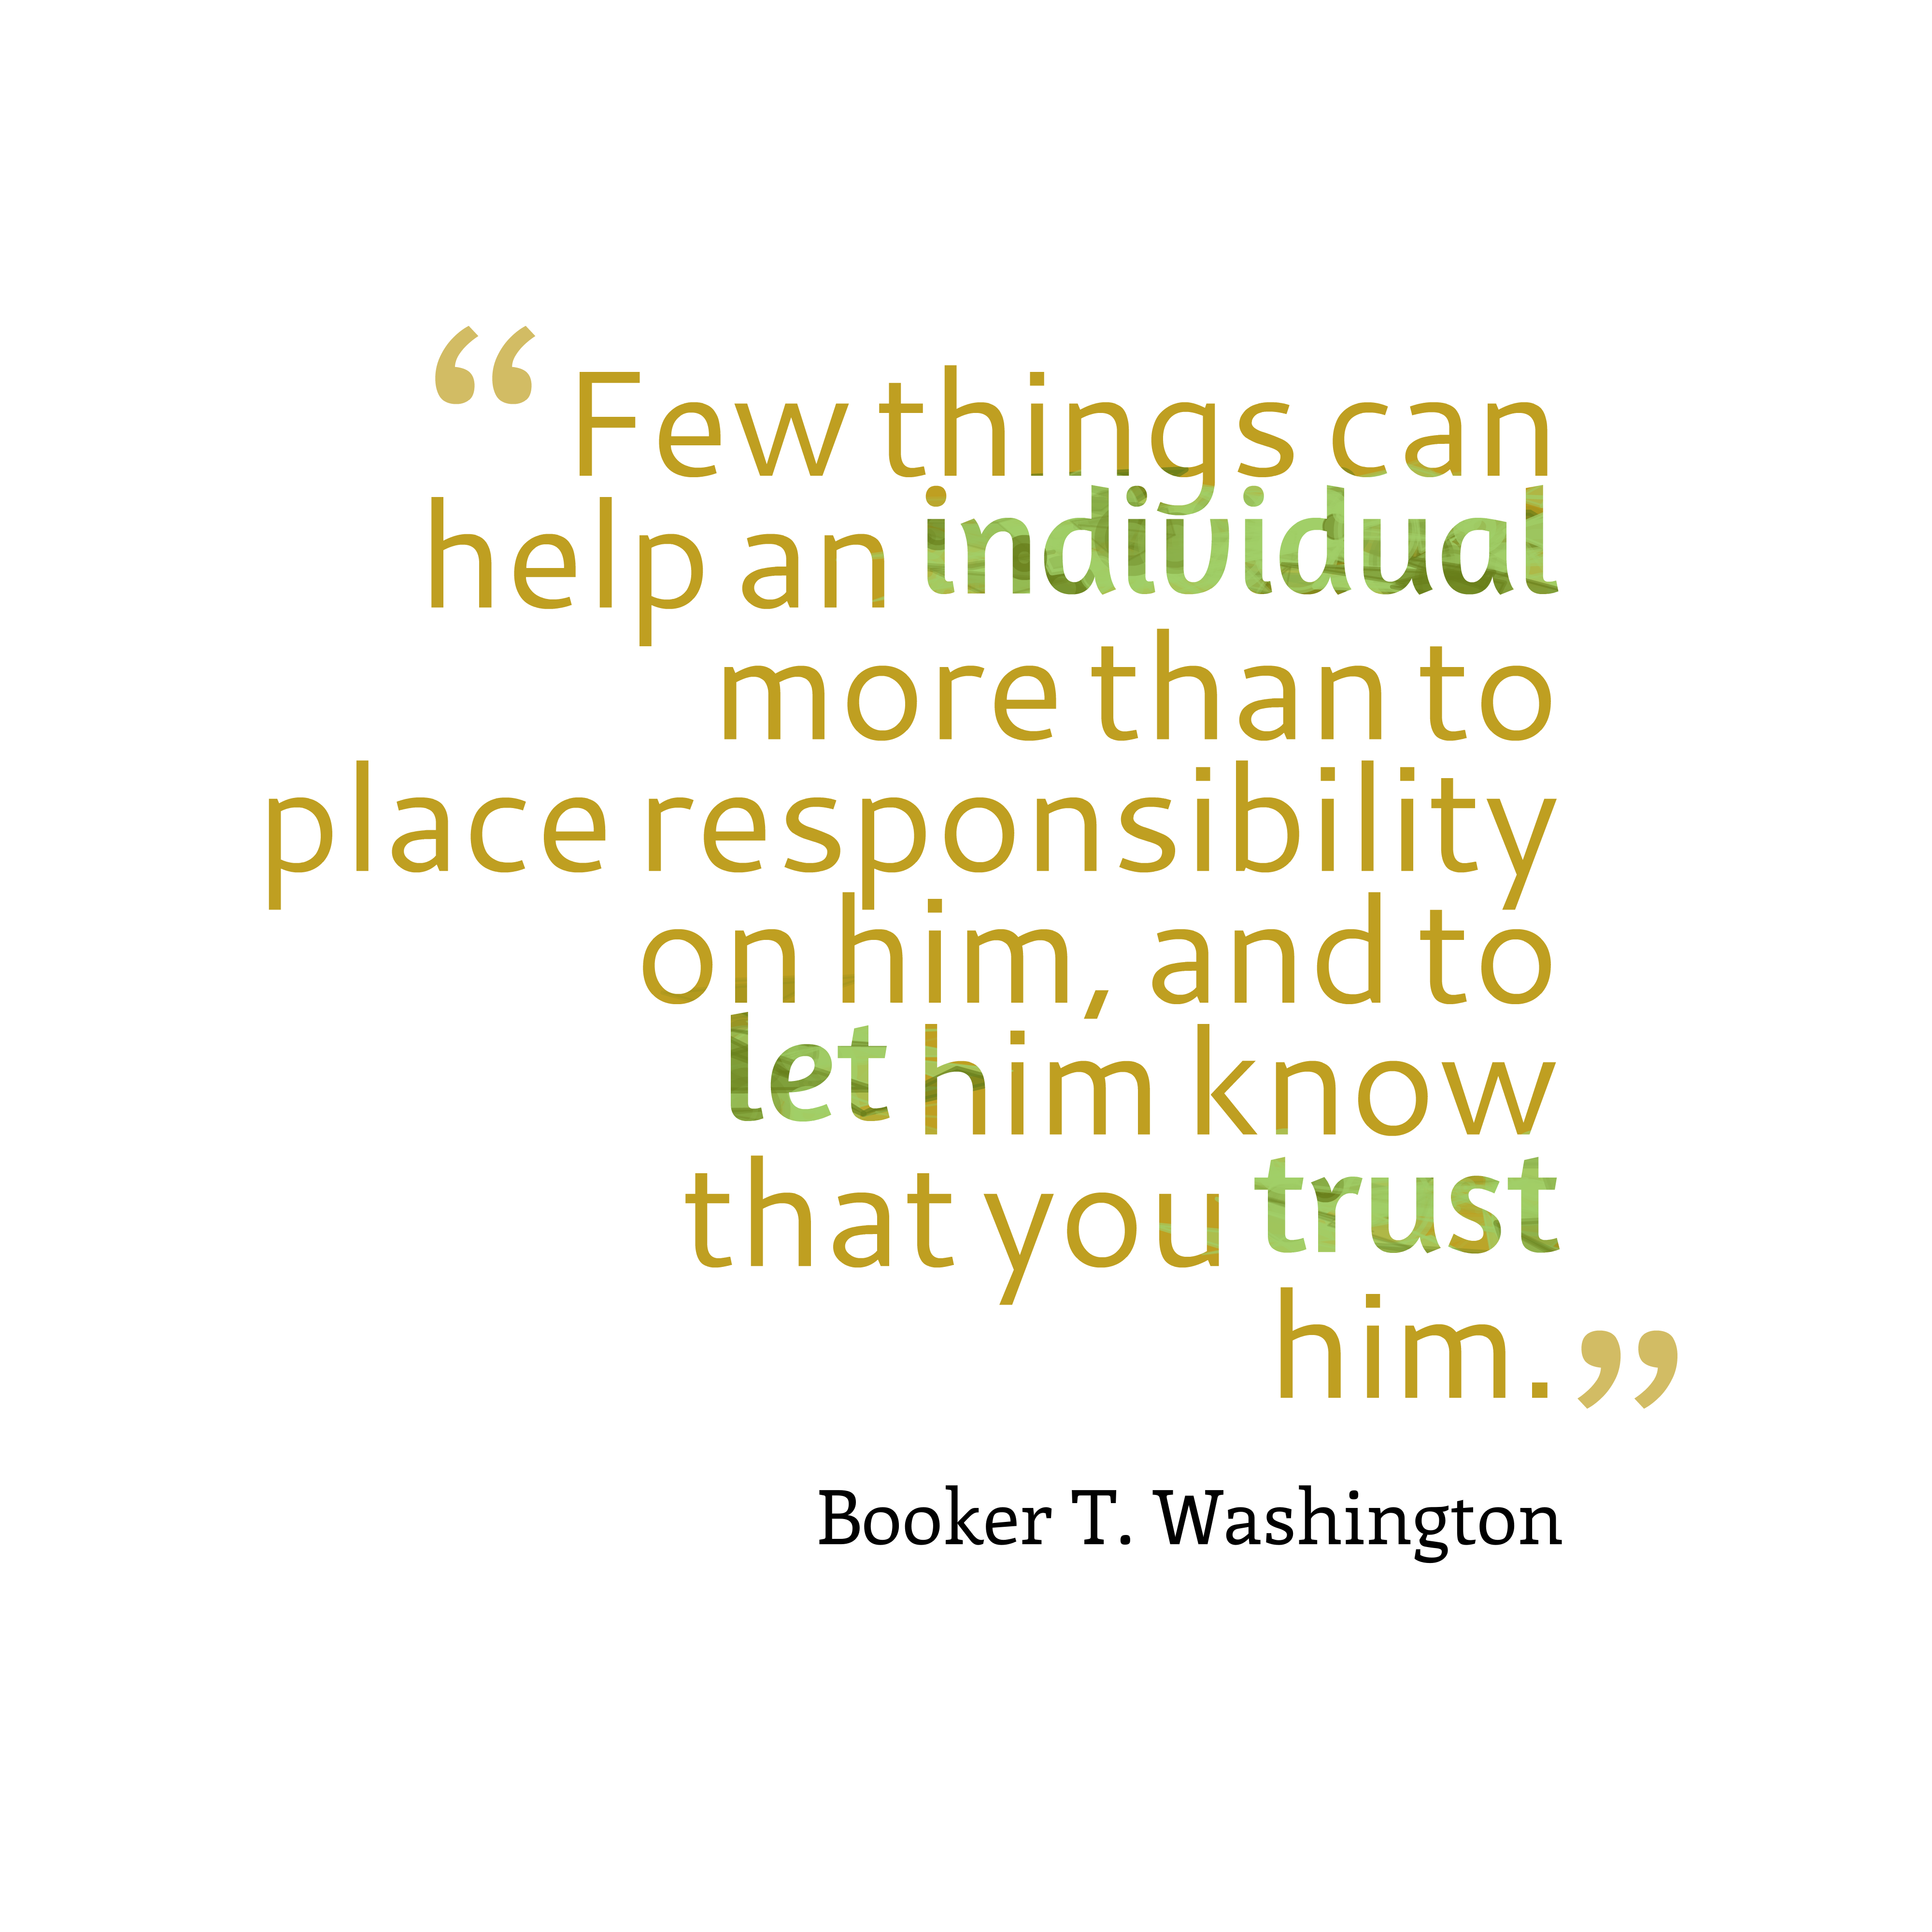 Quotes image of Few things can help an individual more than to place responsibility on him, and to let him know that you trust him.